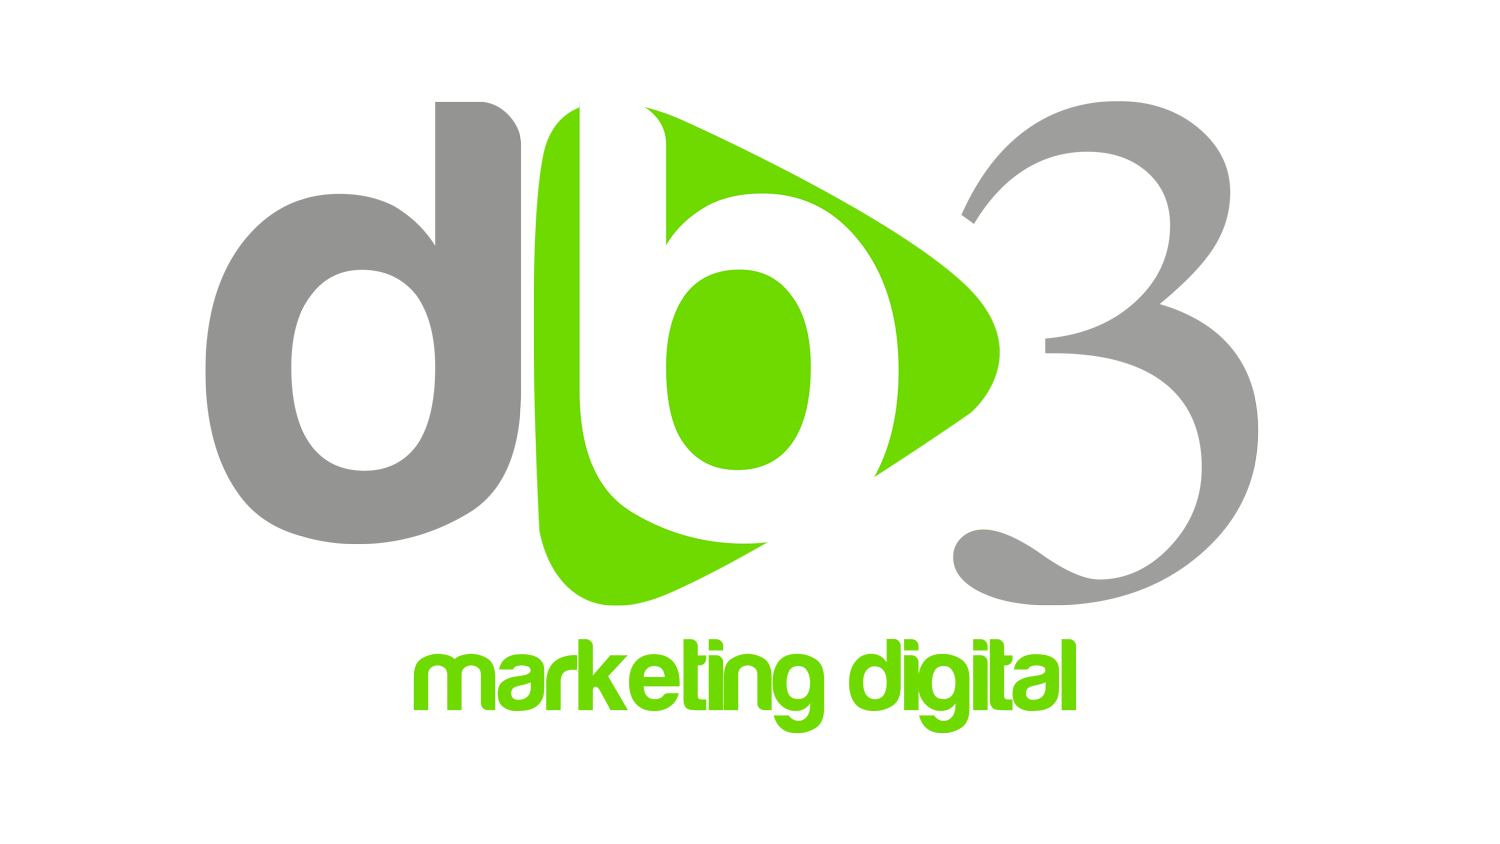 db3 marketing digital